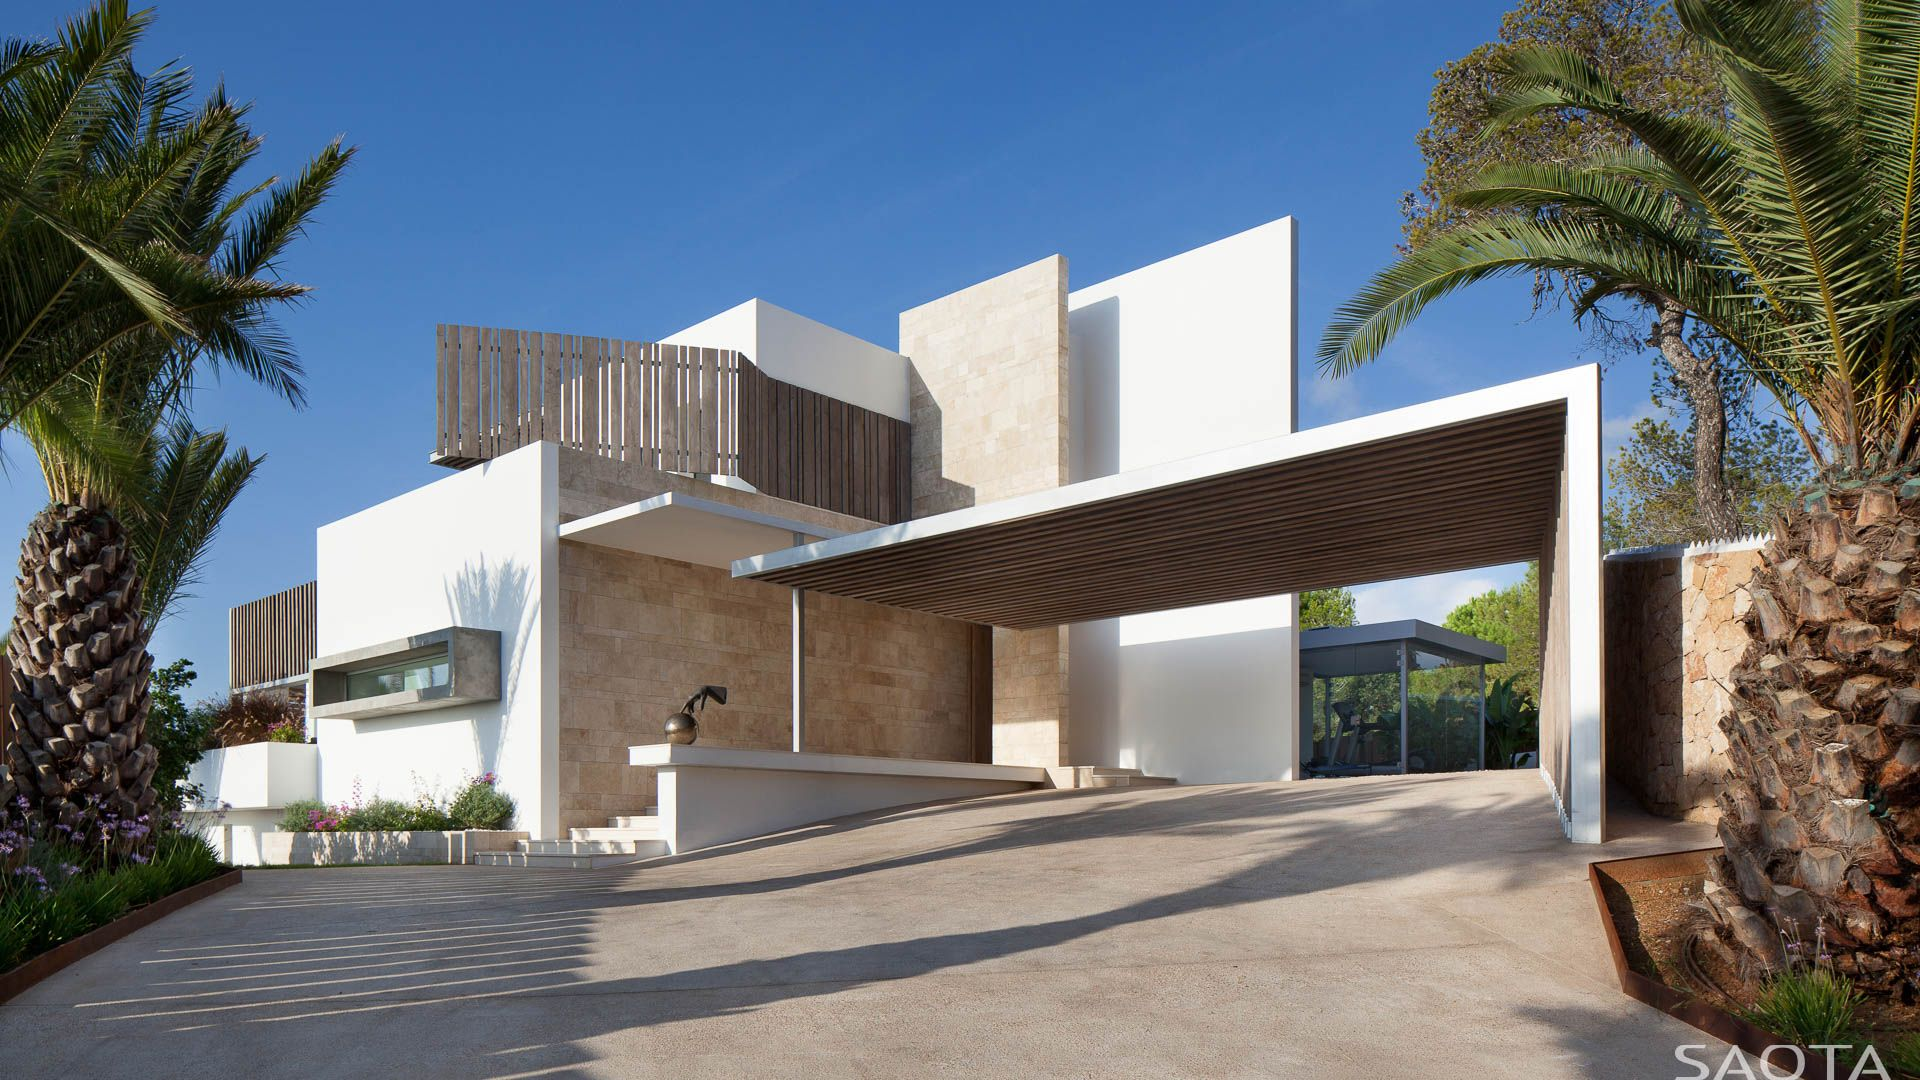 ES ROCA LLISA SAOTA Architecture and Design Minimal houses